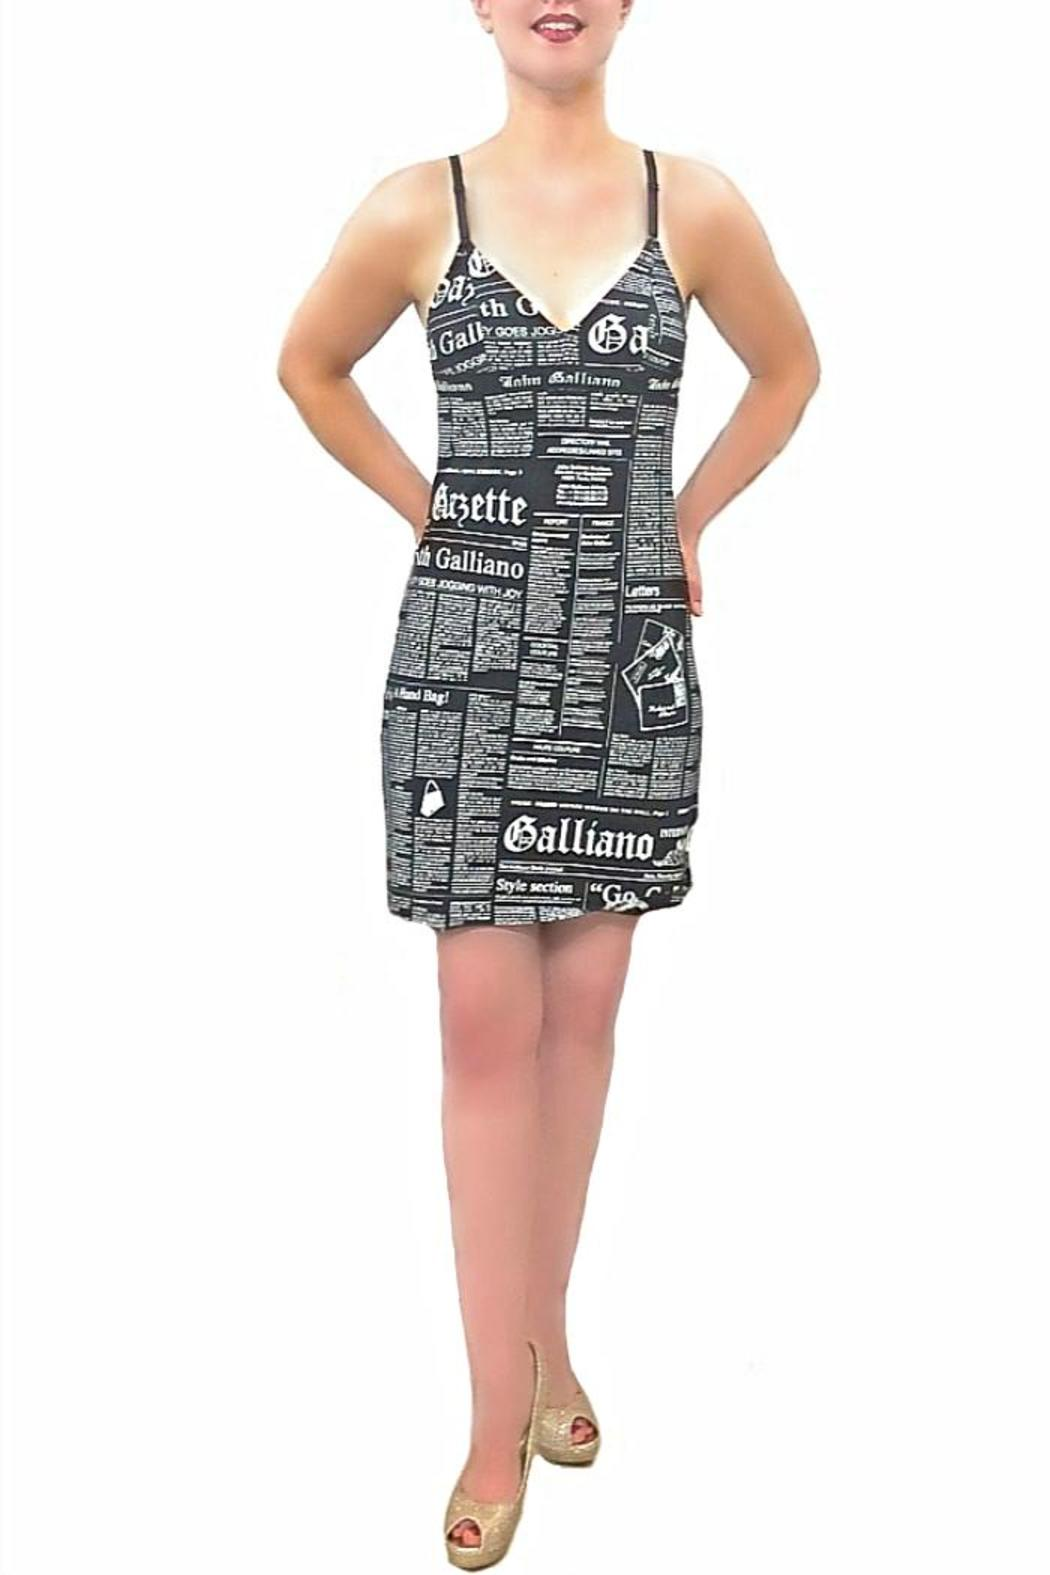 b9a765370125f John Galliano Black Newspaper Dress from Portland by Moods of ...